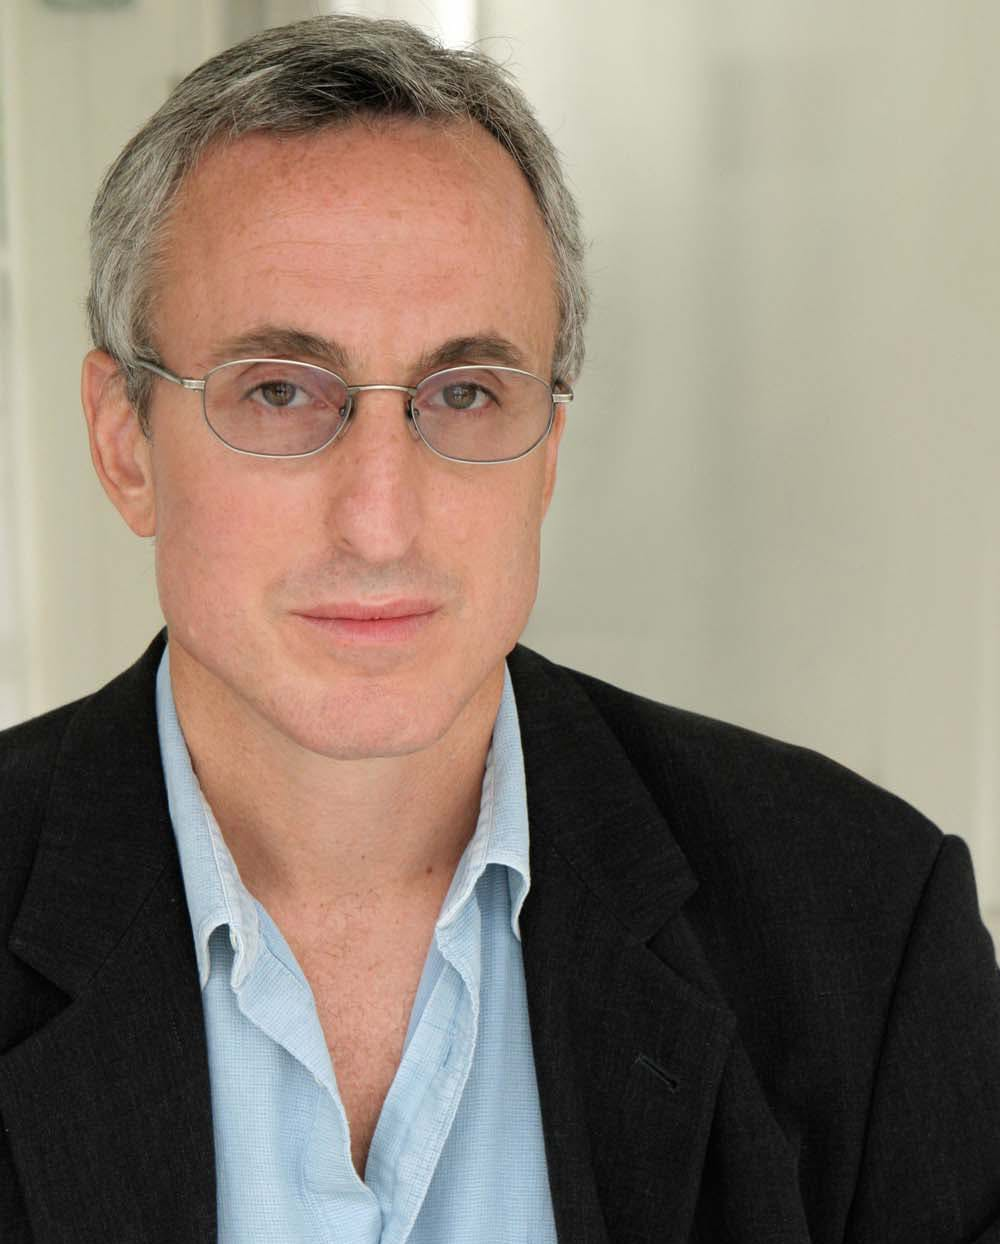 The Exquisite Balancing Act of Doing Science Right – a Commencement Address by Gary Taubes